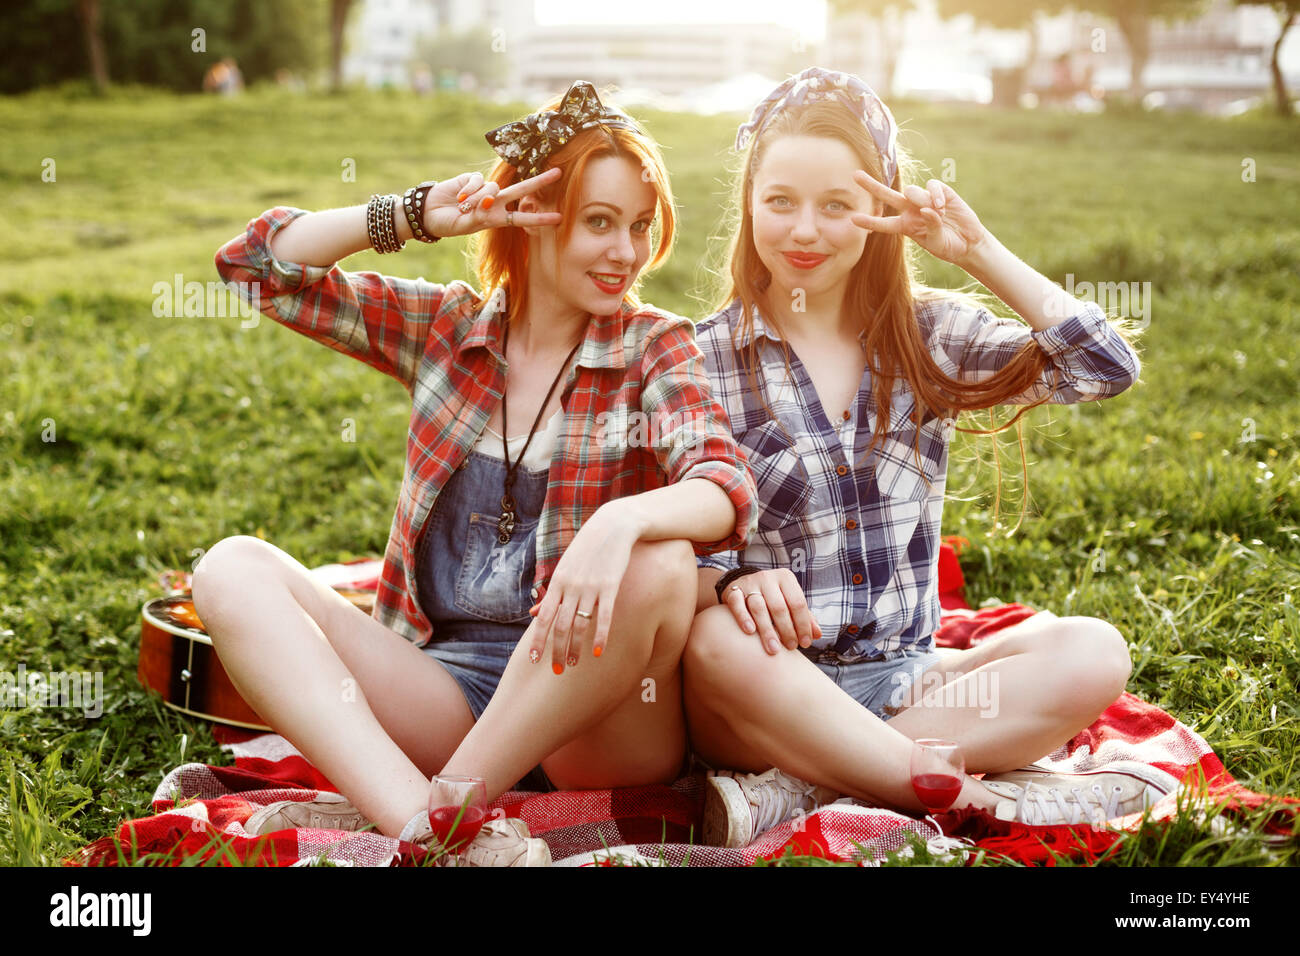 Two Young Smiling Hipster Girls Having Fun At A Picnic In